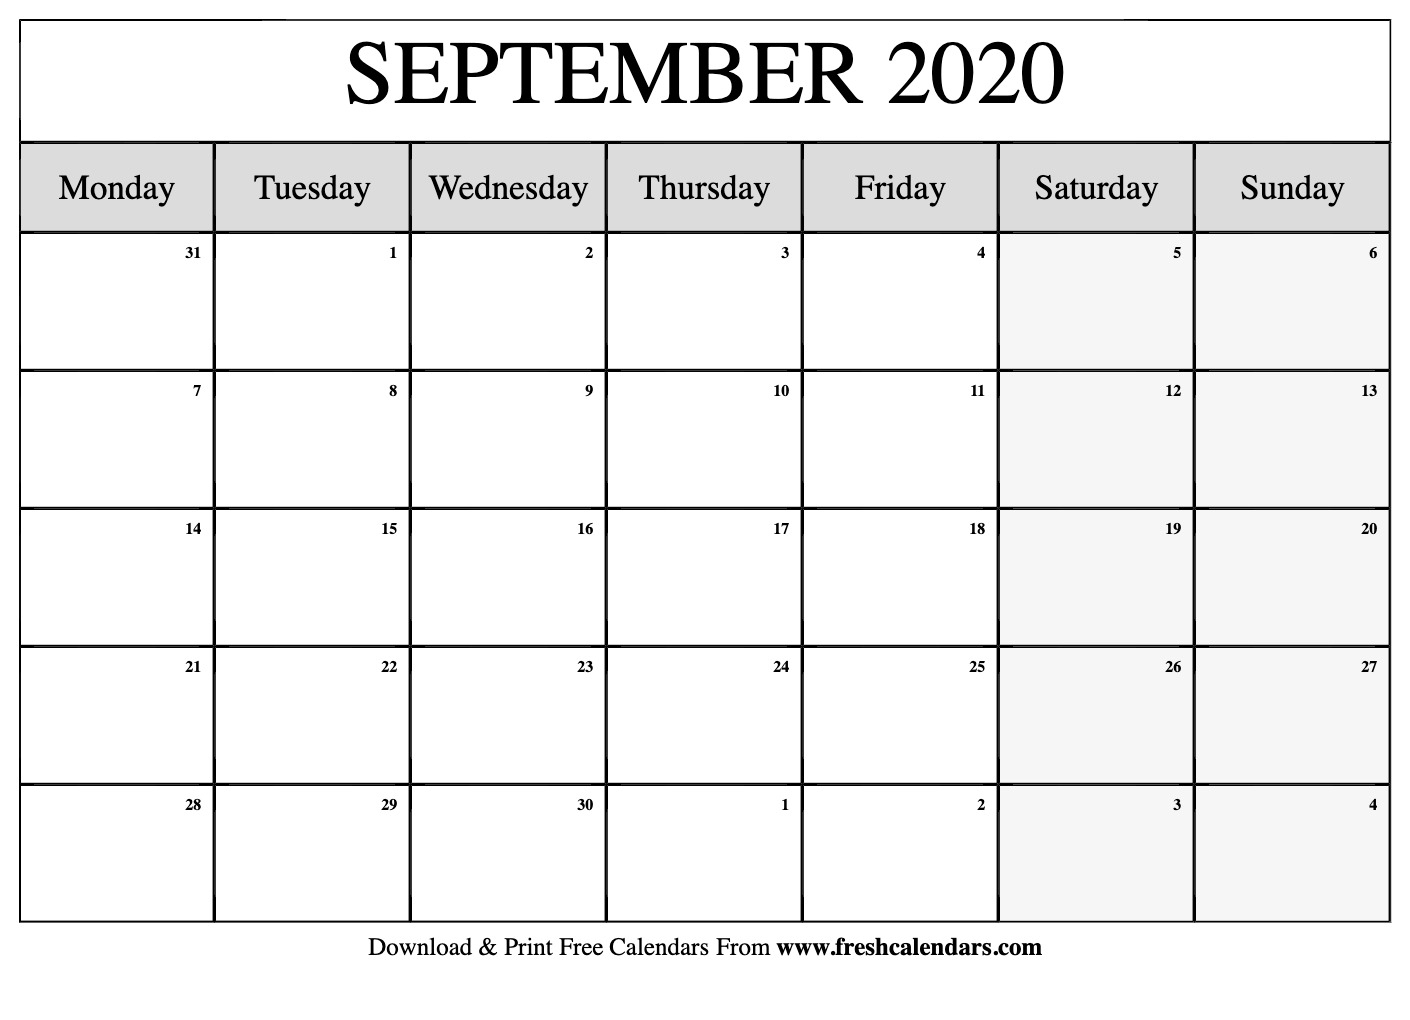 Free Printable September 2020 Calendar regarding Free Printable Monthly Calendar September 2020